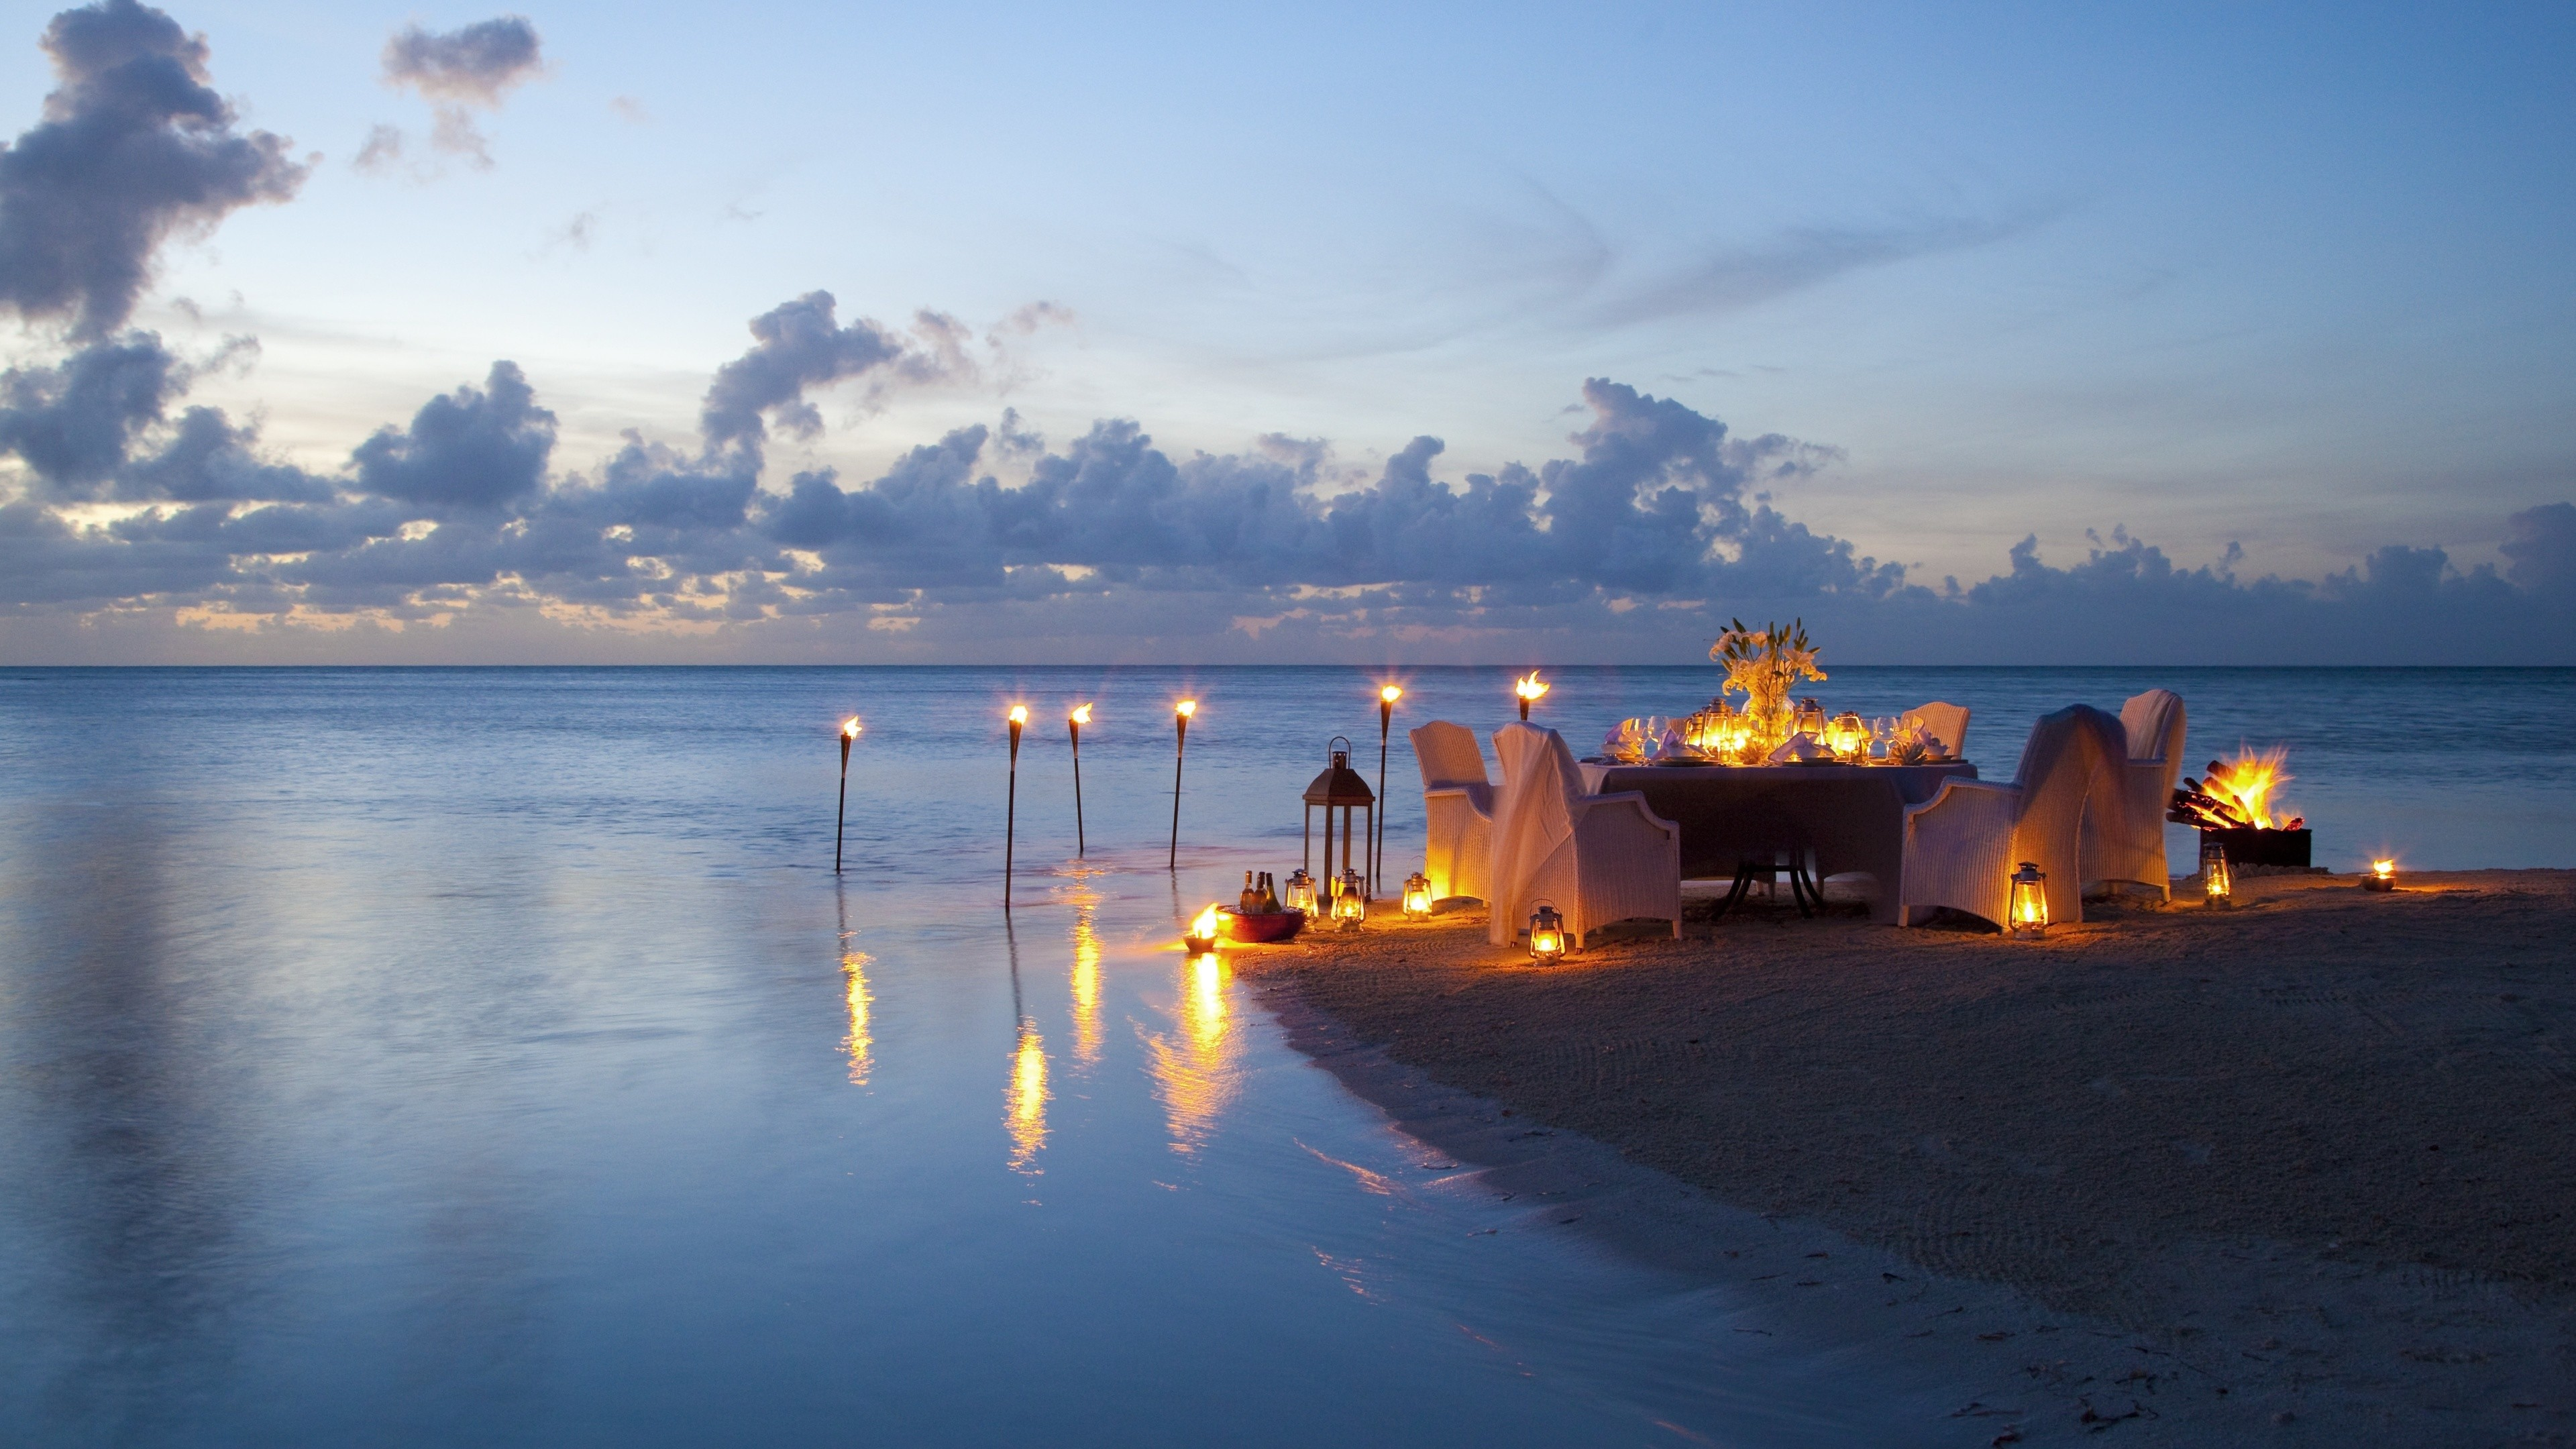 3840x2160 Romantic Candle Light Dinner At Beach